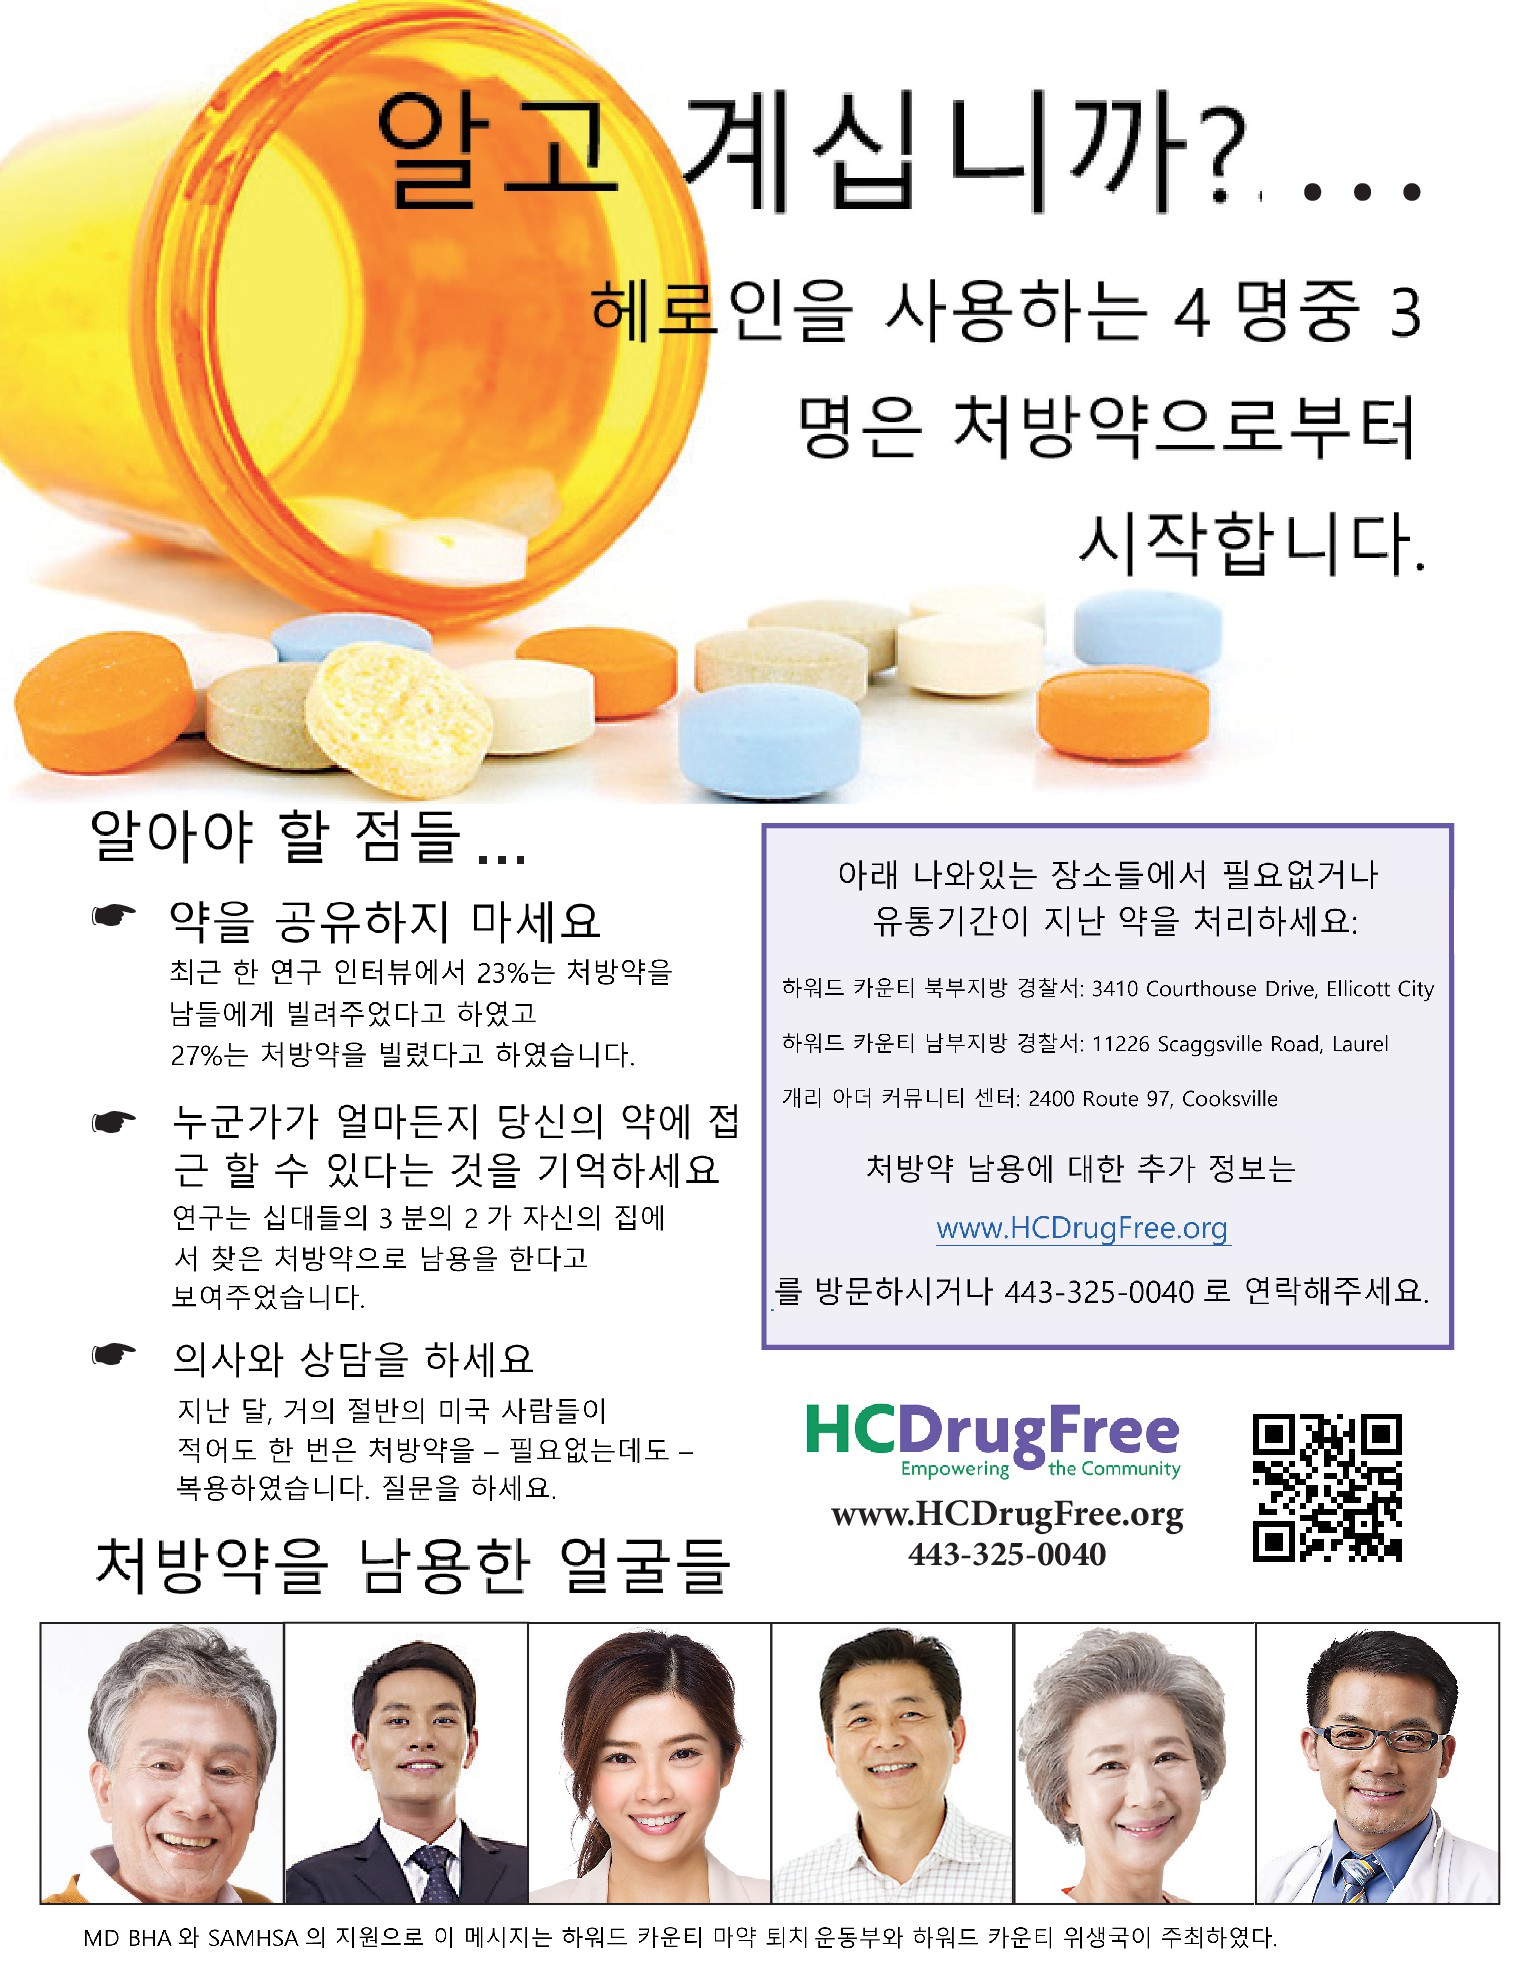 Korean Association Against Drug Abuse      National Asian Pacific American Families Against Substance Abuse (NAPAFASA)